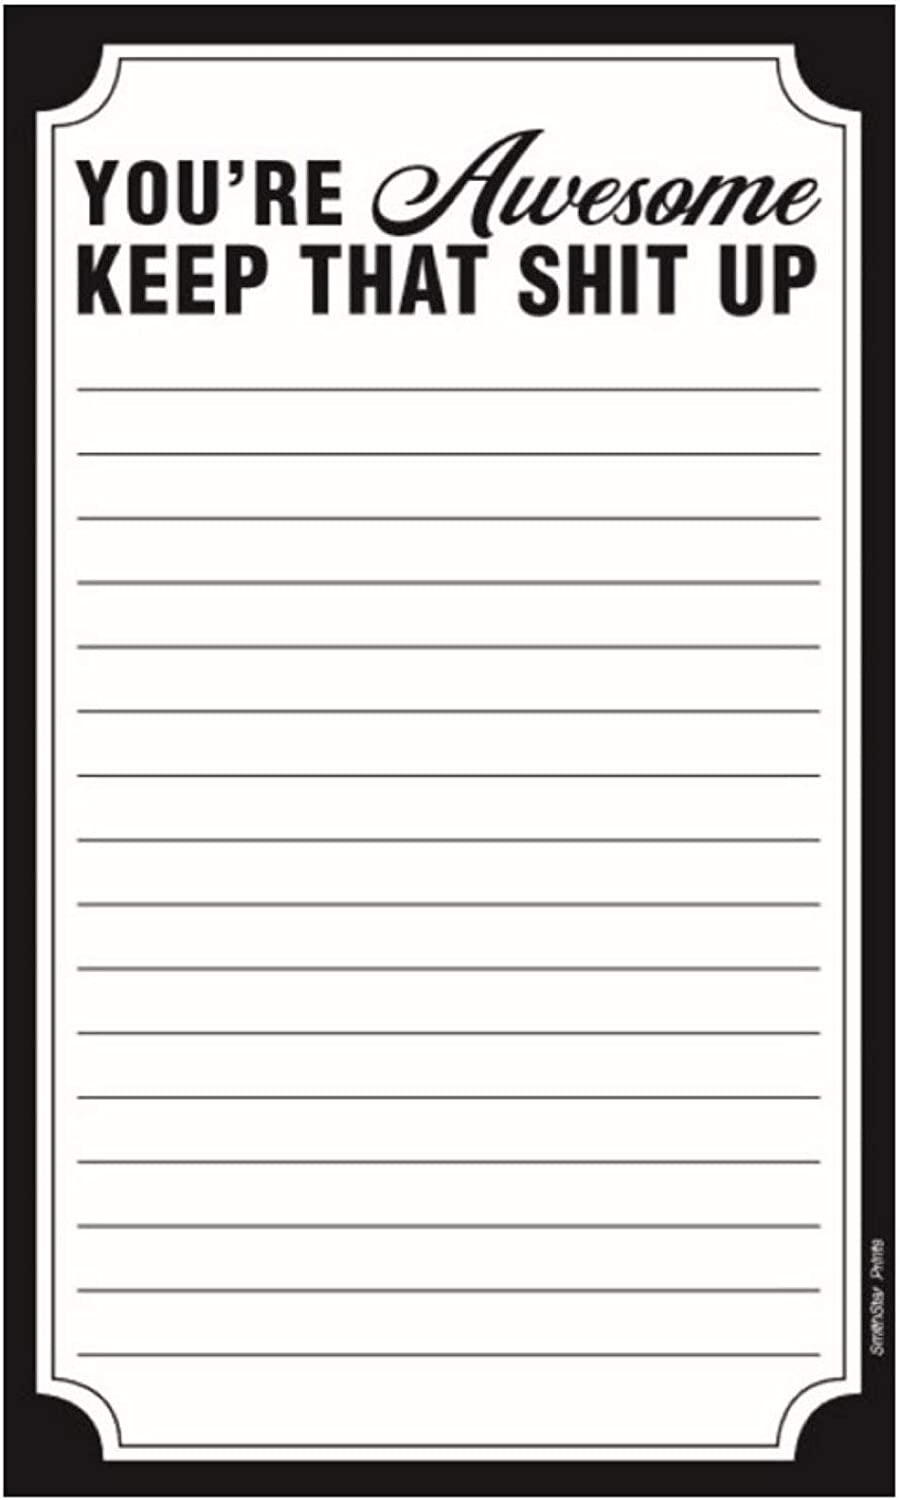 Magnetic Notepad for Refrigerator- Grocery List, Shopping List, To Do List, Honey Do List, Memo Pad for Home or Office, Funny and Motivational Gift Idea, 7.5 x 4.25 Inches (50 Sheets)